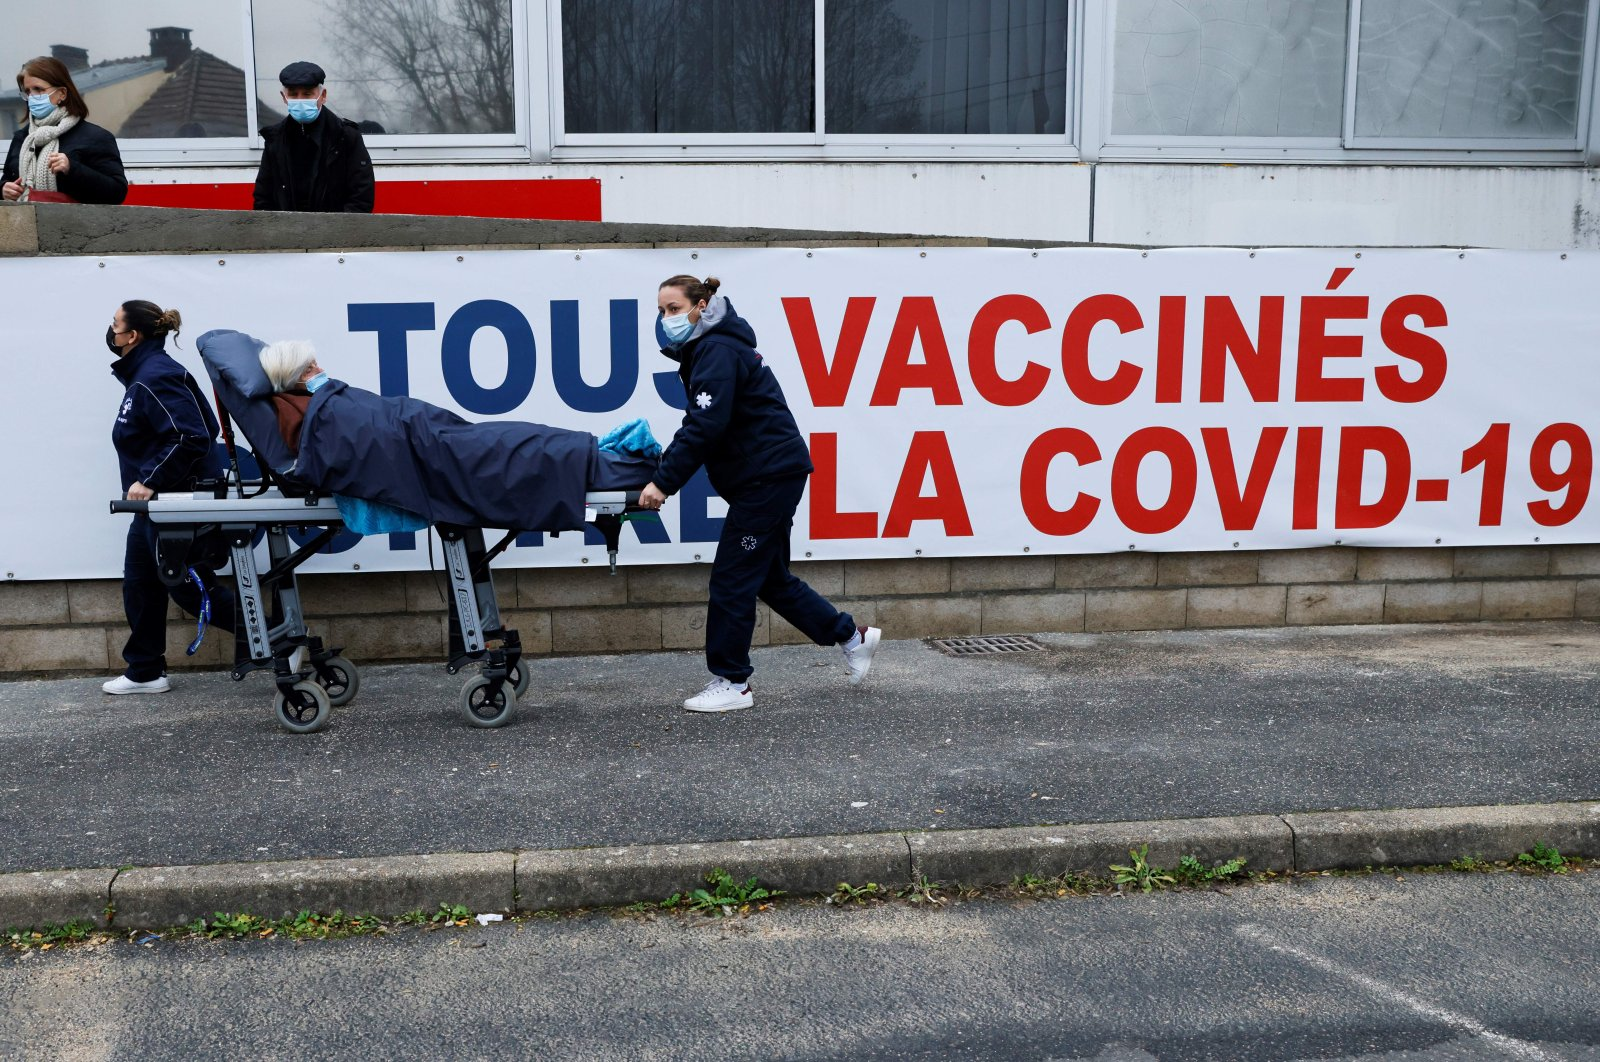 A woman is carried on a stretcher to the COVID-19 vaccination center at the South Ile-de-France Hospital Group in Melun, on the outskirts of Paris, France, Feb. 8, 2021. (EPA Photo)